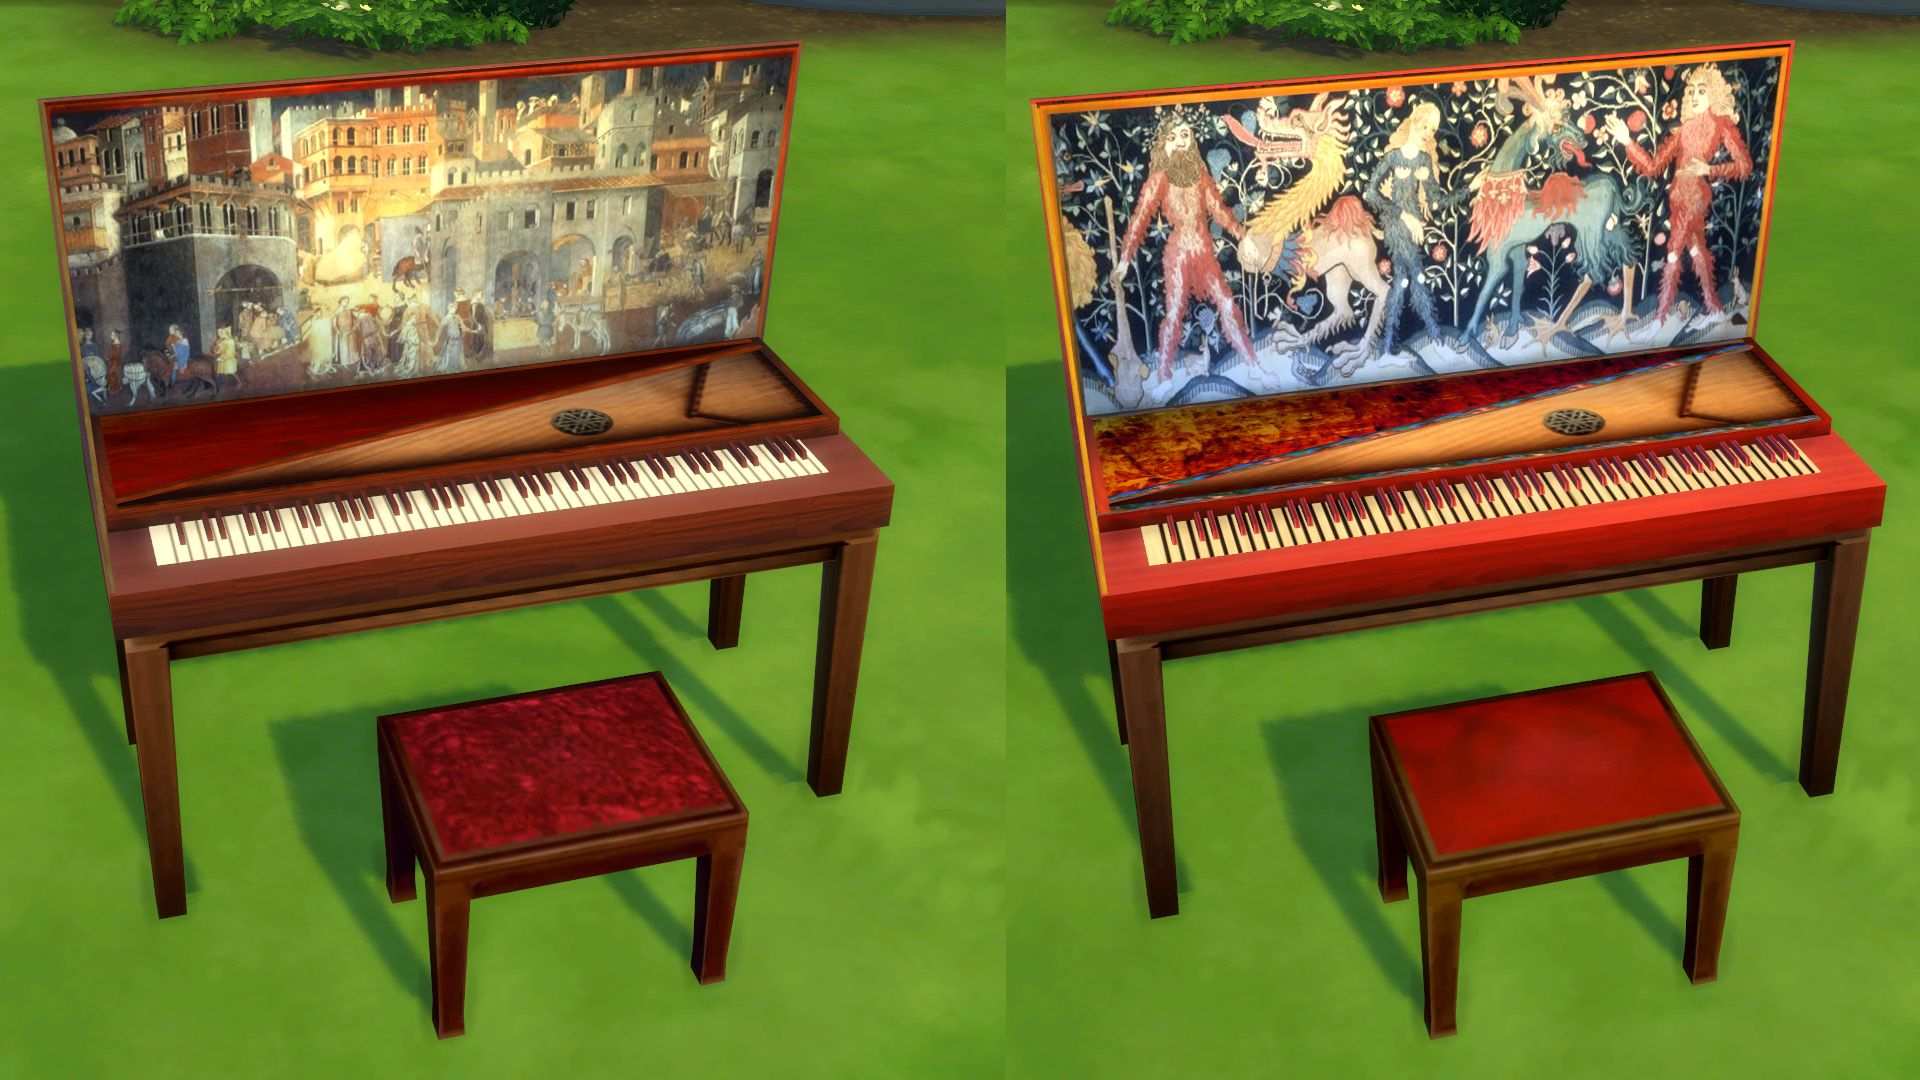 Mod The Sims Medieval/RenaissanceStyle Piano (With